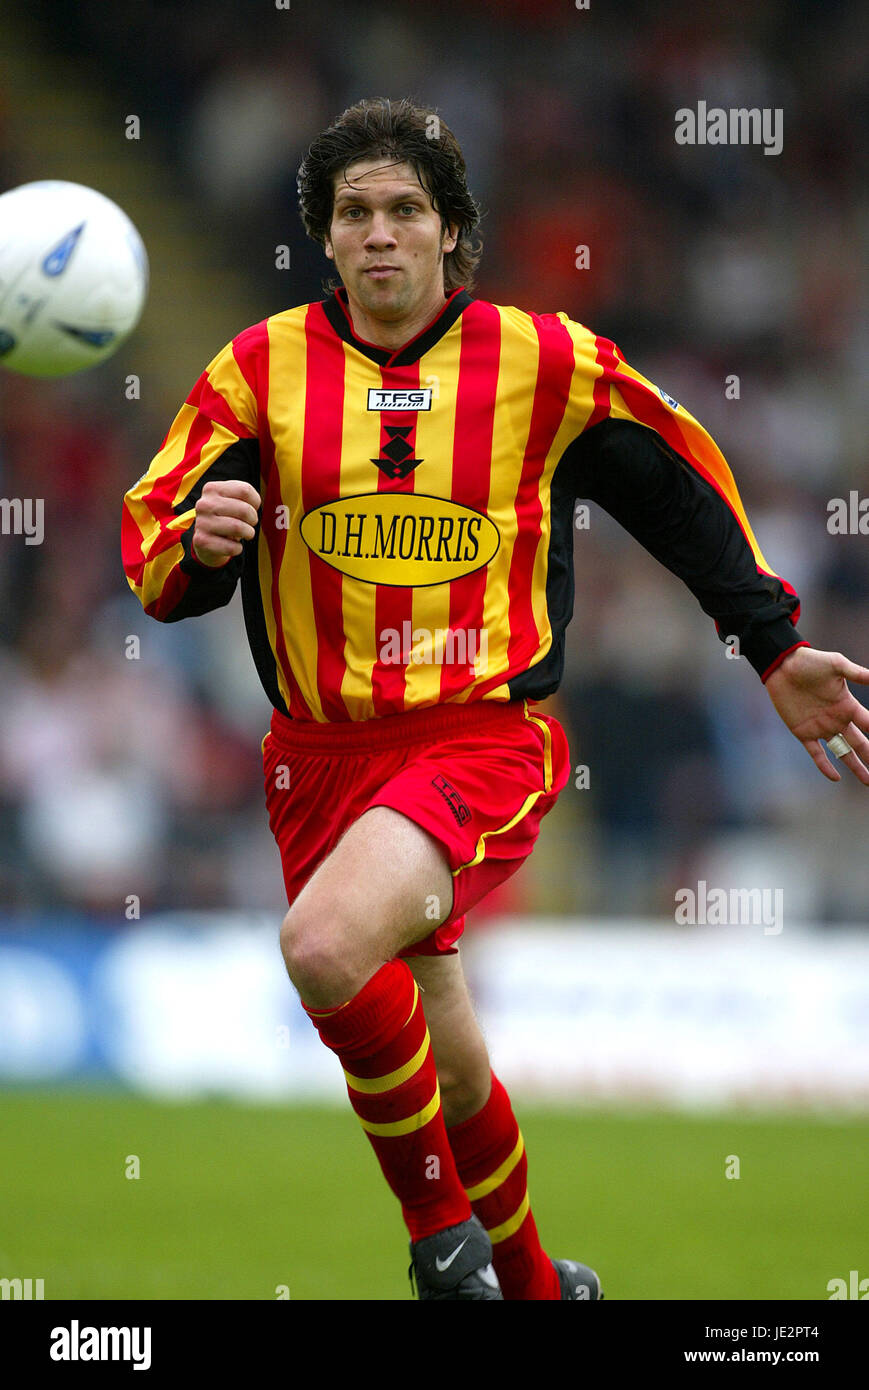 SCOTT PATERSON . PARTICK THISTLE FC FIRHILL GLASGOW SCOTLAND 03 August 2002 - Stock Image